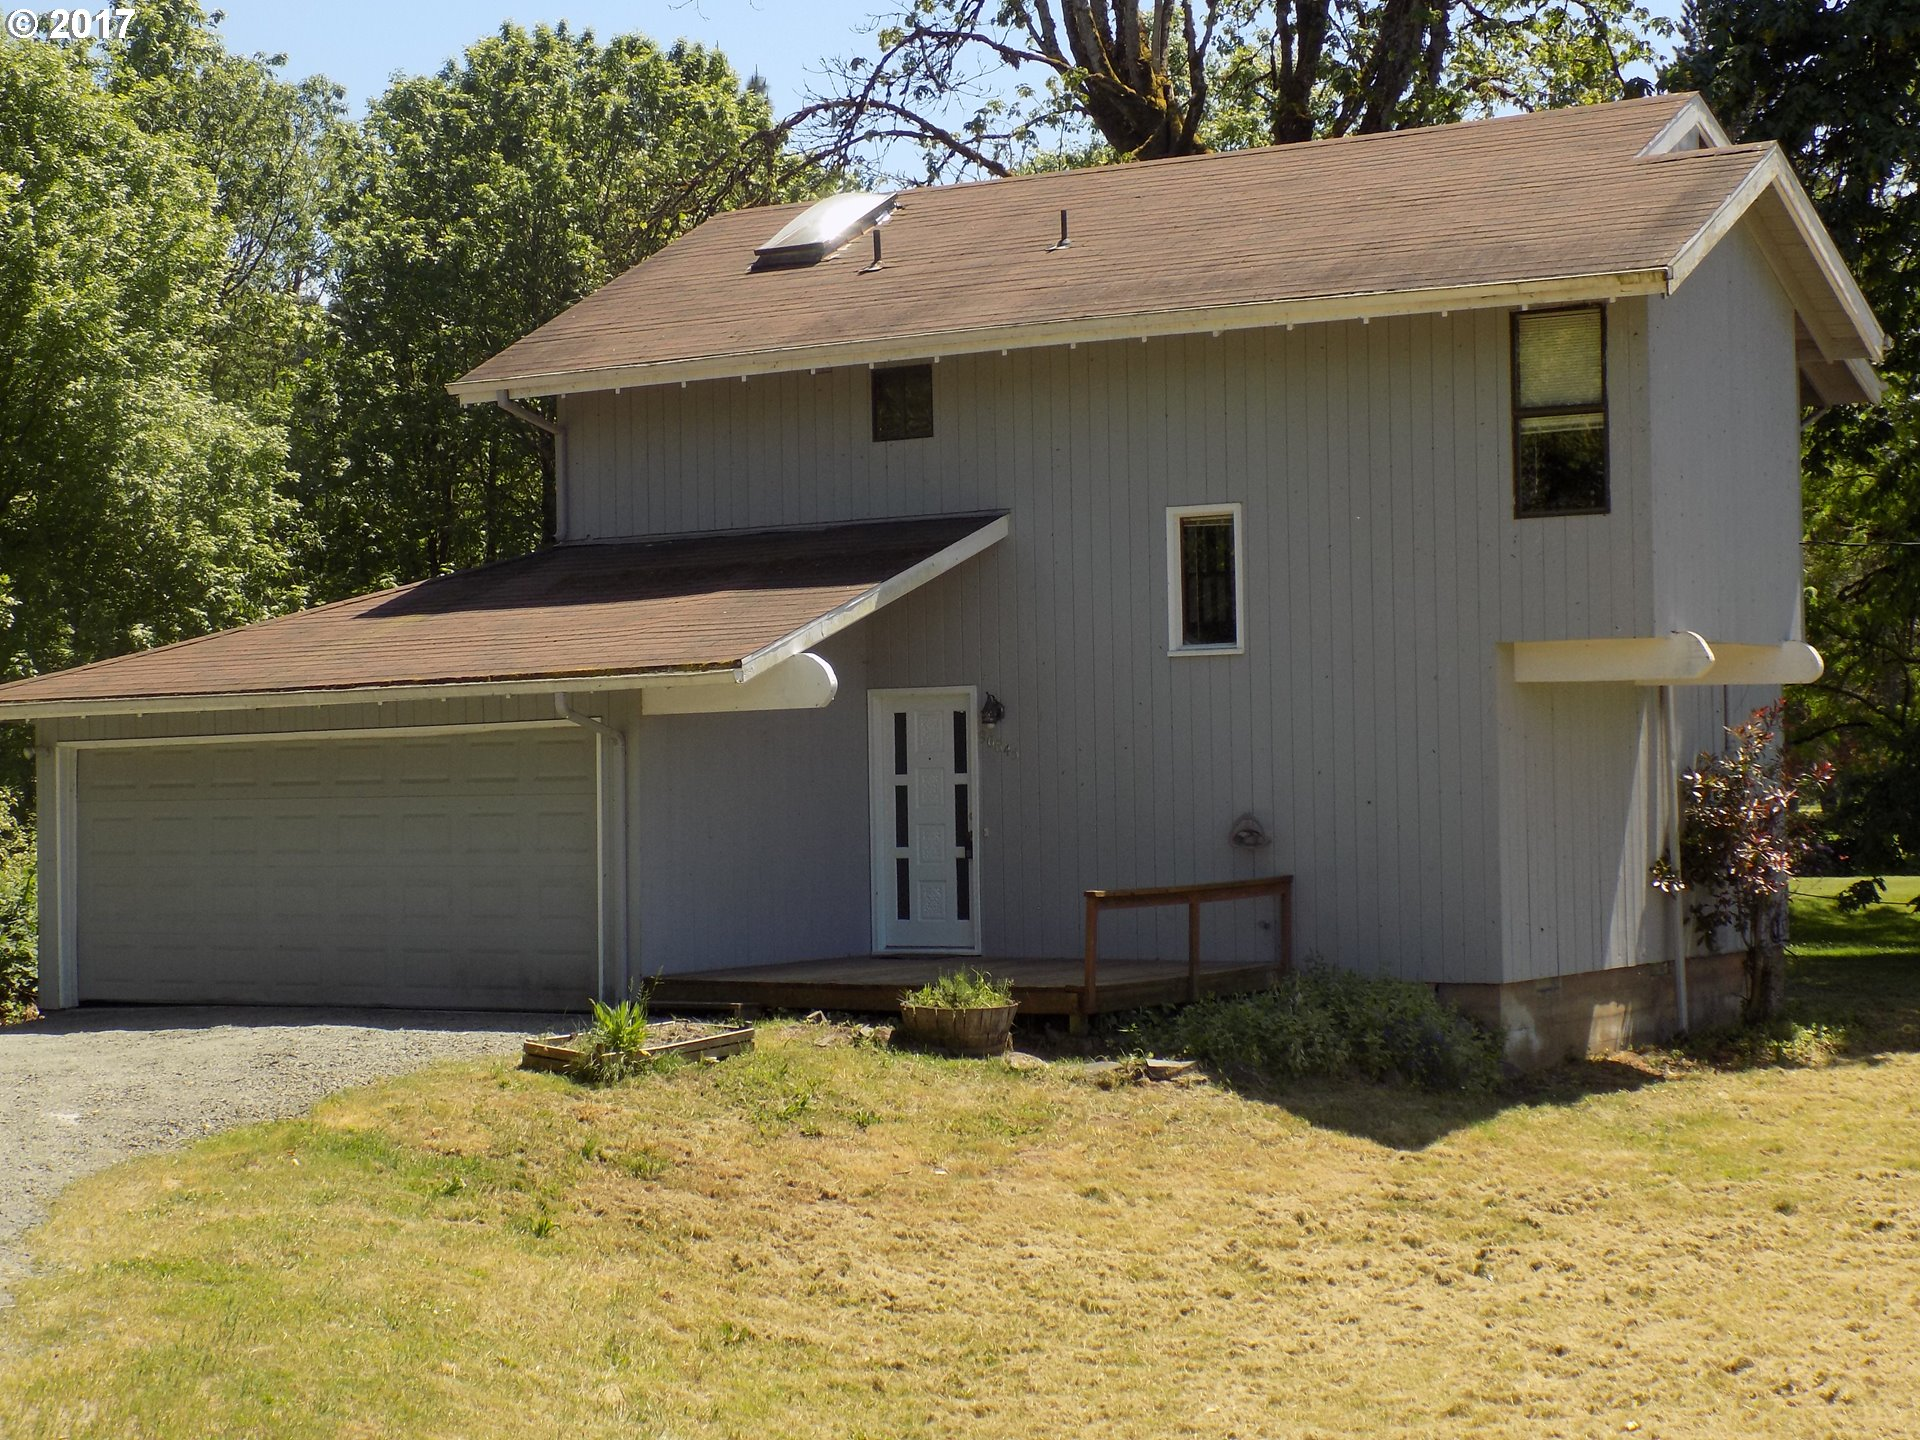 90645 marcola rd springfield or 97478 st clair properties